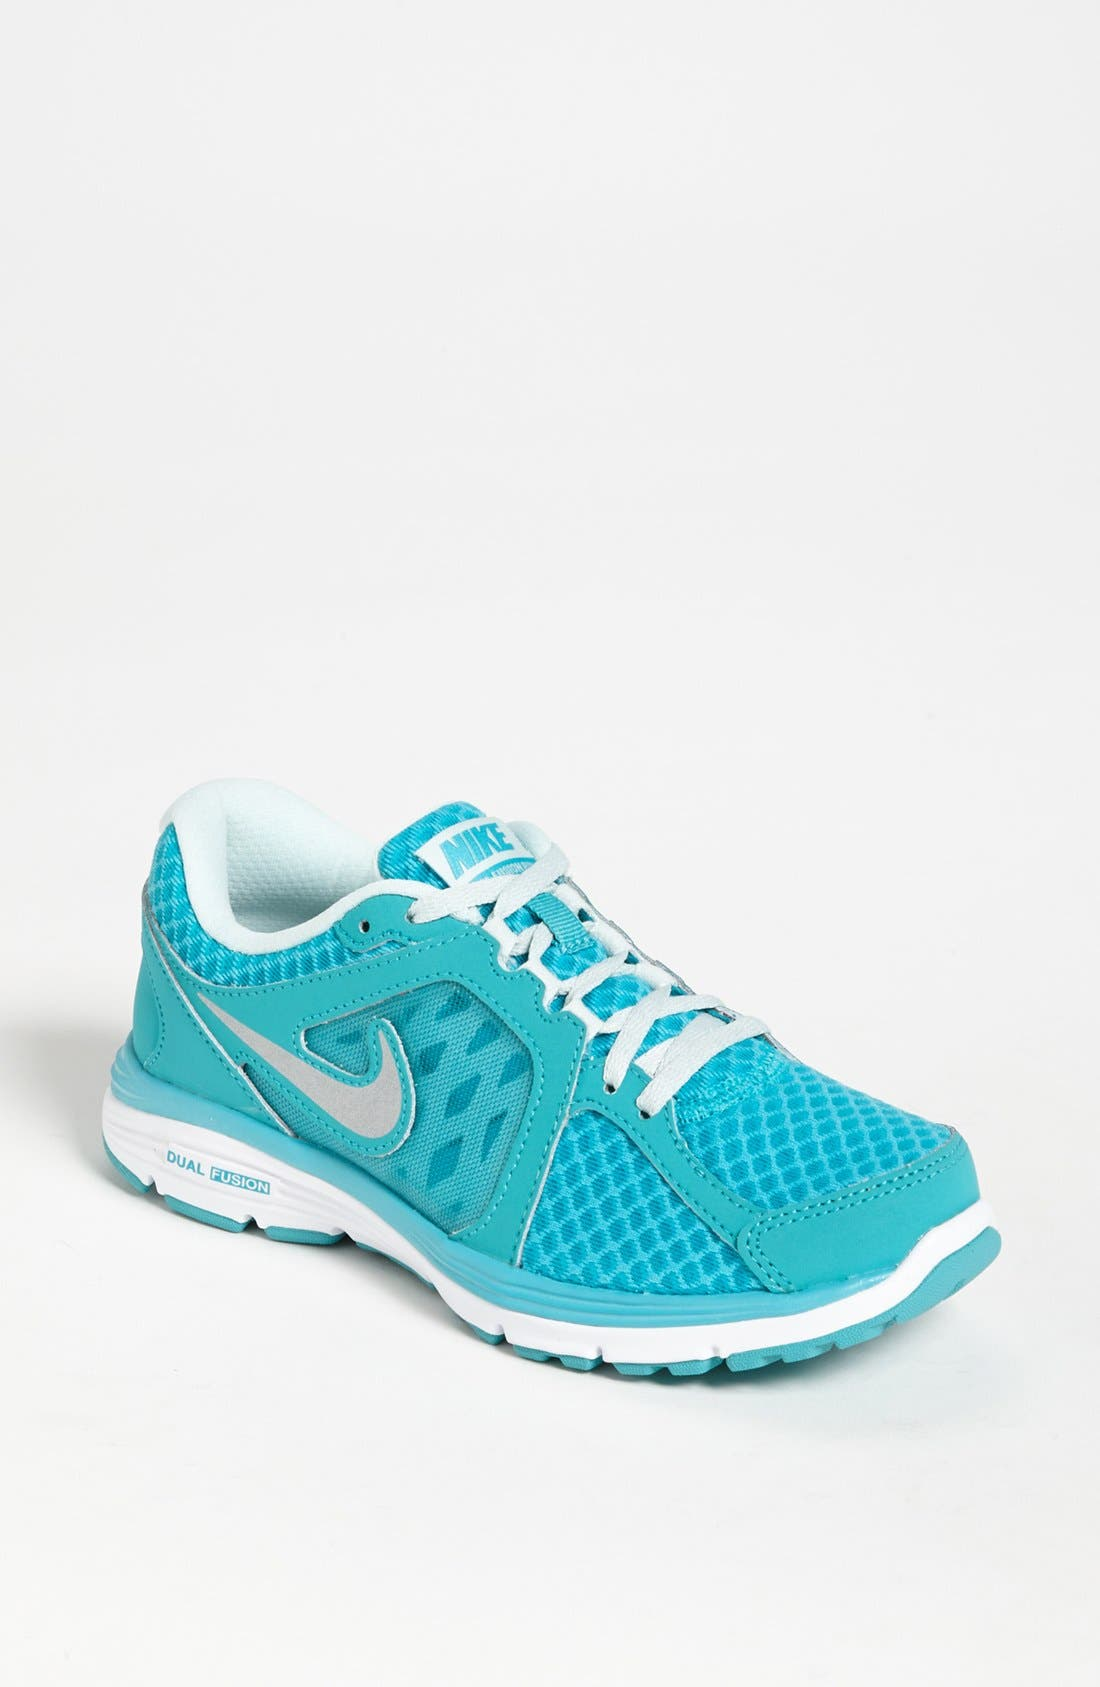 Main Image - Nike 'Dual Fusion Run Breathe' Running Shoe (Women)